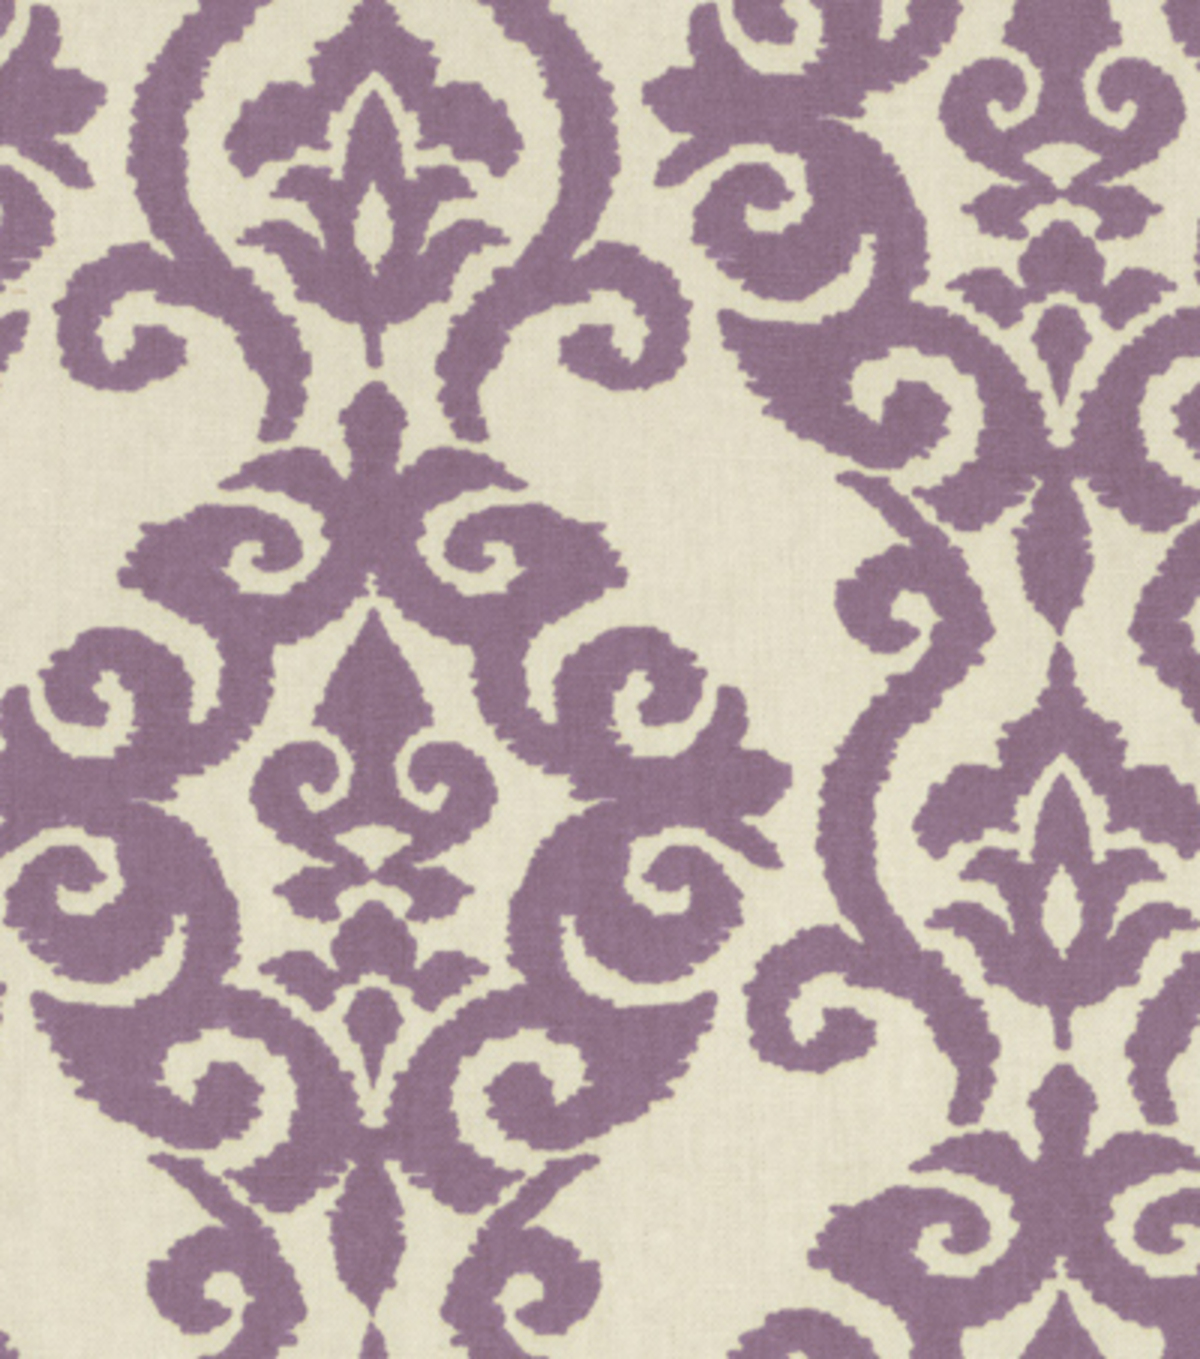 Home Decor 8\u0022x8\u0022 Fabric Swatch-Waverly Luminary Lilac